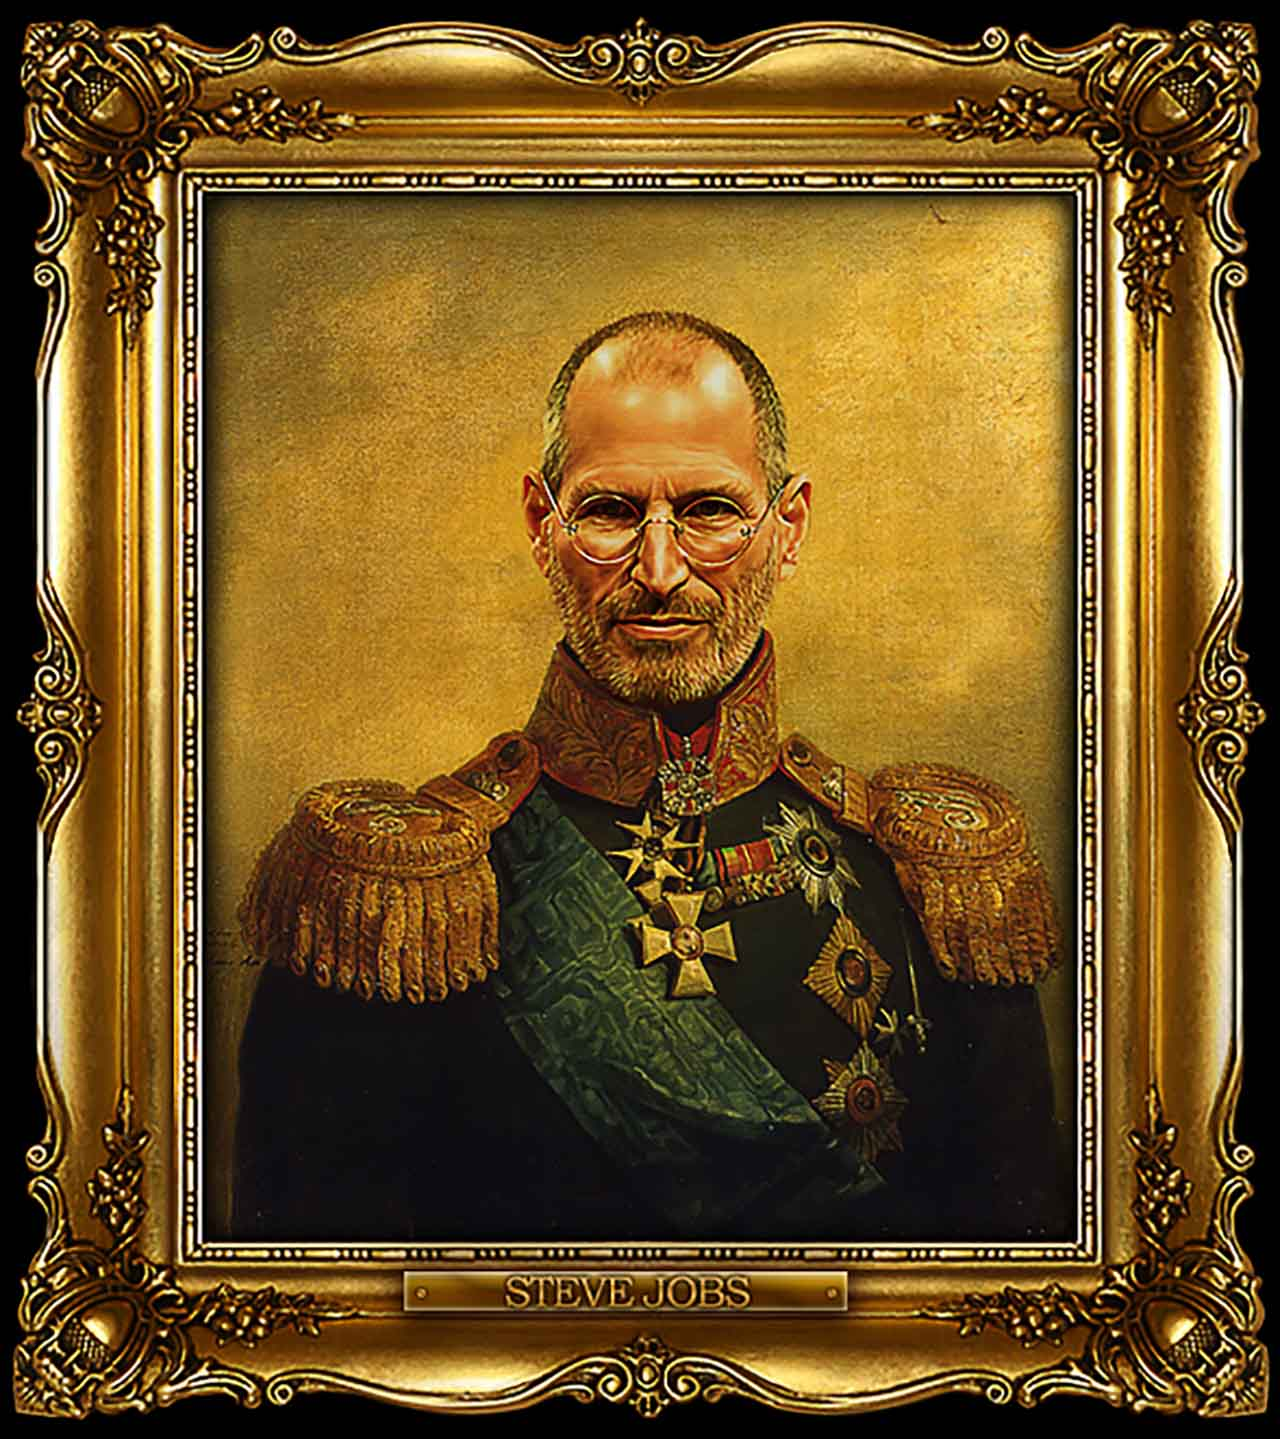 Artist Turns Famous Actors Into Russian Generals - Steve Jobs